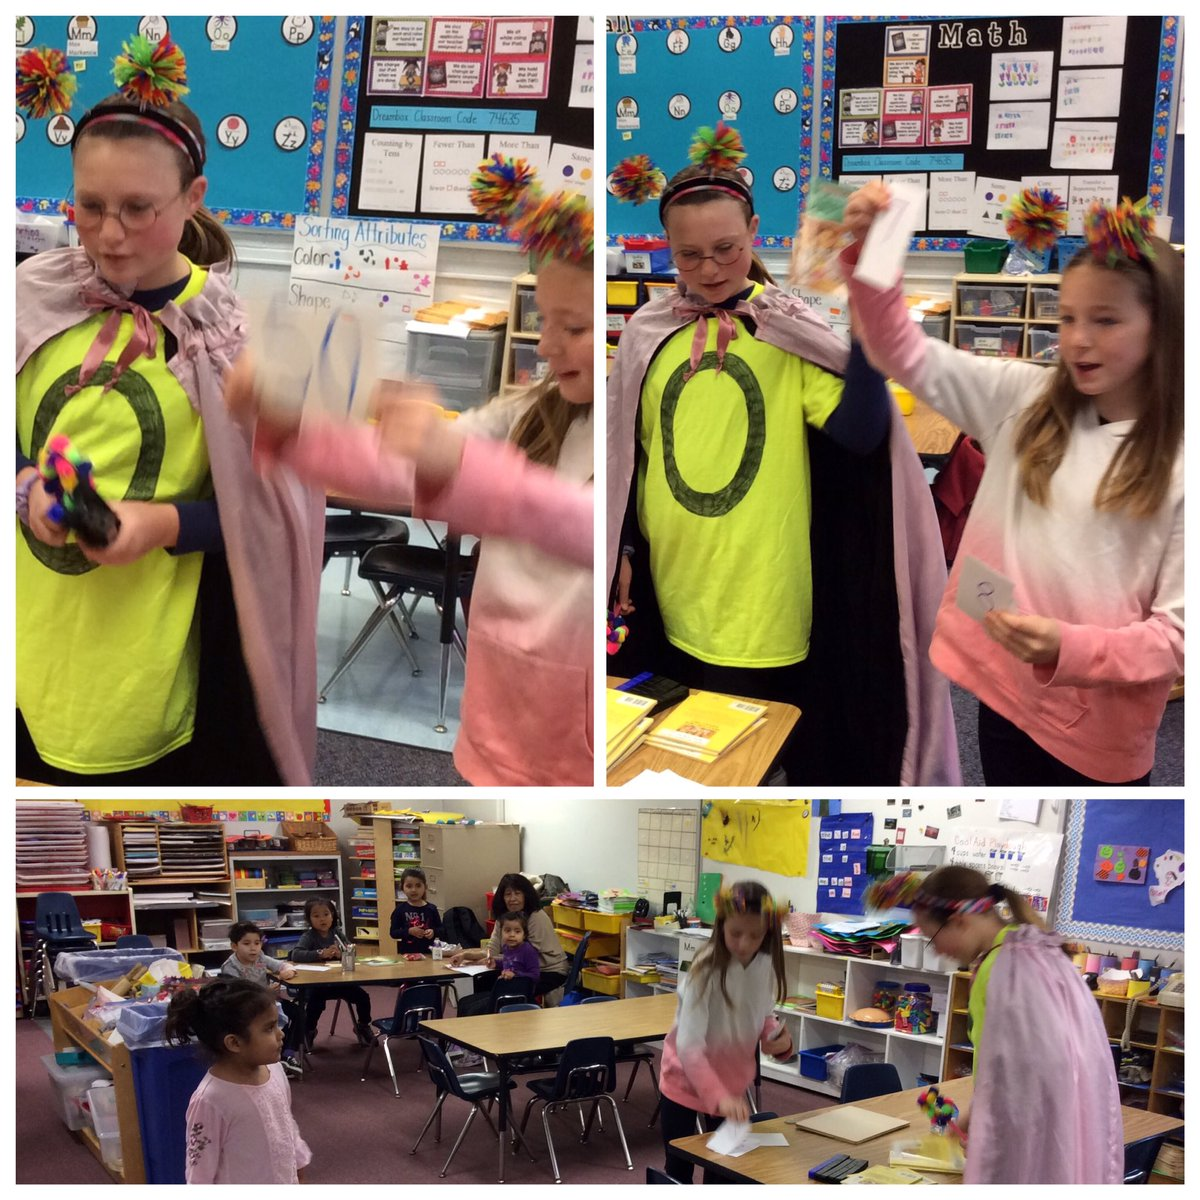 Zero the Hero and her assistant helped the Pre-K and K classes <a target='_blank' href='http://twitter.com/CampbellAPS'>@CampbellAPS</a> celebrate the 50th Day of School!  <a target='_blank' href='http://twitter.com/OConnor4_5'>@OConnor4_5</a> <a target='_blank' href='http://twitter.com/ThinkCampbell'>@ThinkCampbell</a> <a target='_blank' href='http://twitter.com/APSMath'>@APSMath</a> <a target='_blank' href='http://twitter.com/MsSokol1'>@MsSokol1</a> <a target='_blank' href='http://twitter.com/wadeturneraps'>@wadeturneraps</a> <a target='_blank' href='https://t.co/A9TD6KA6qM'>https://t.co/A9TD6KA6qM</a>